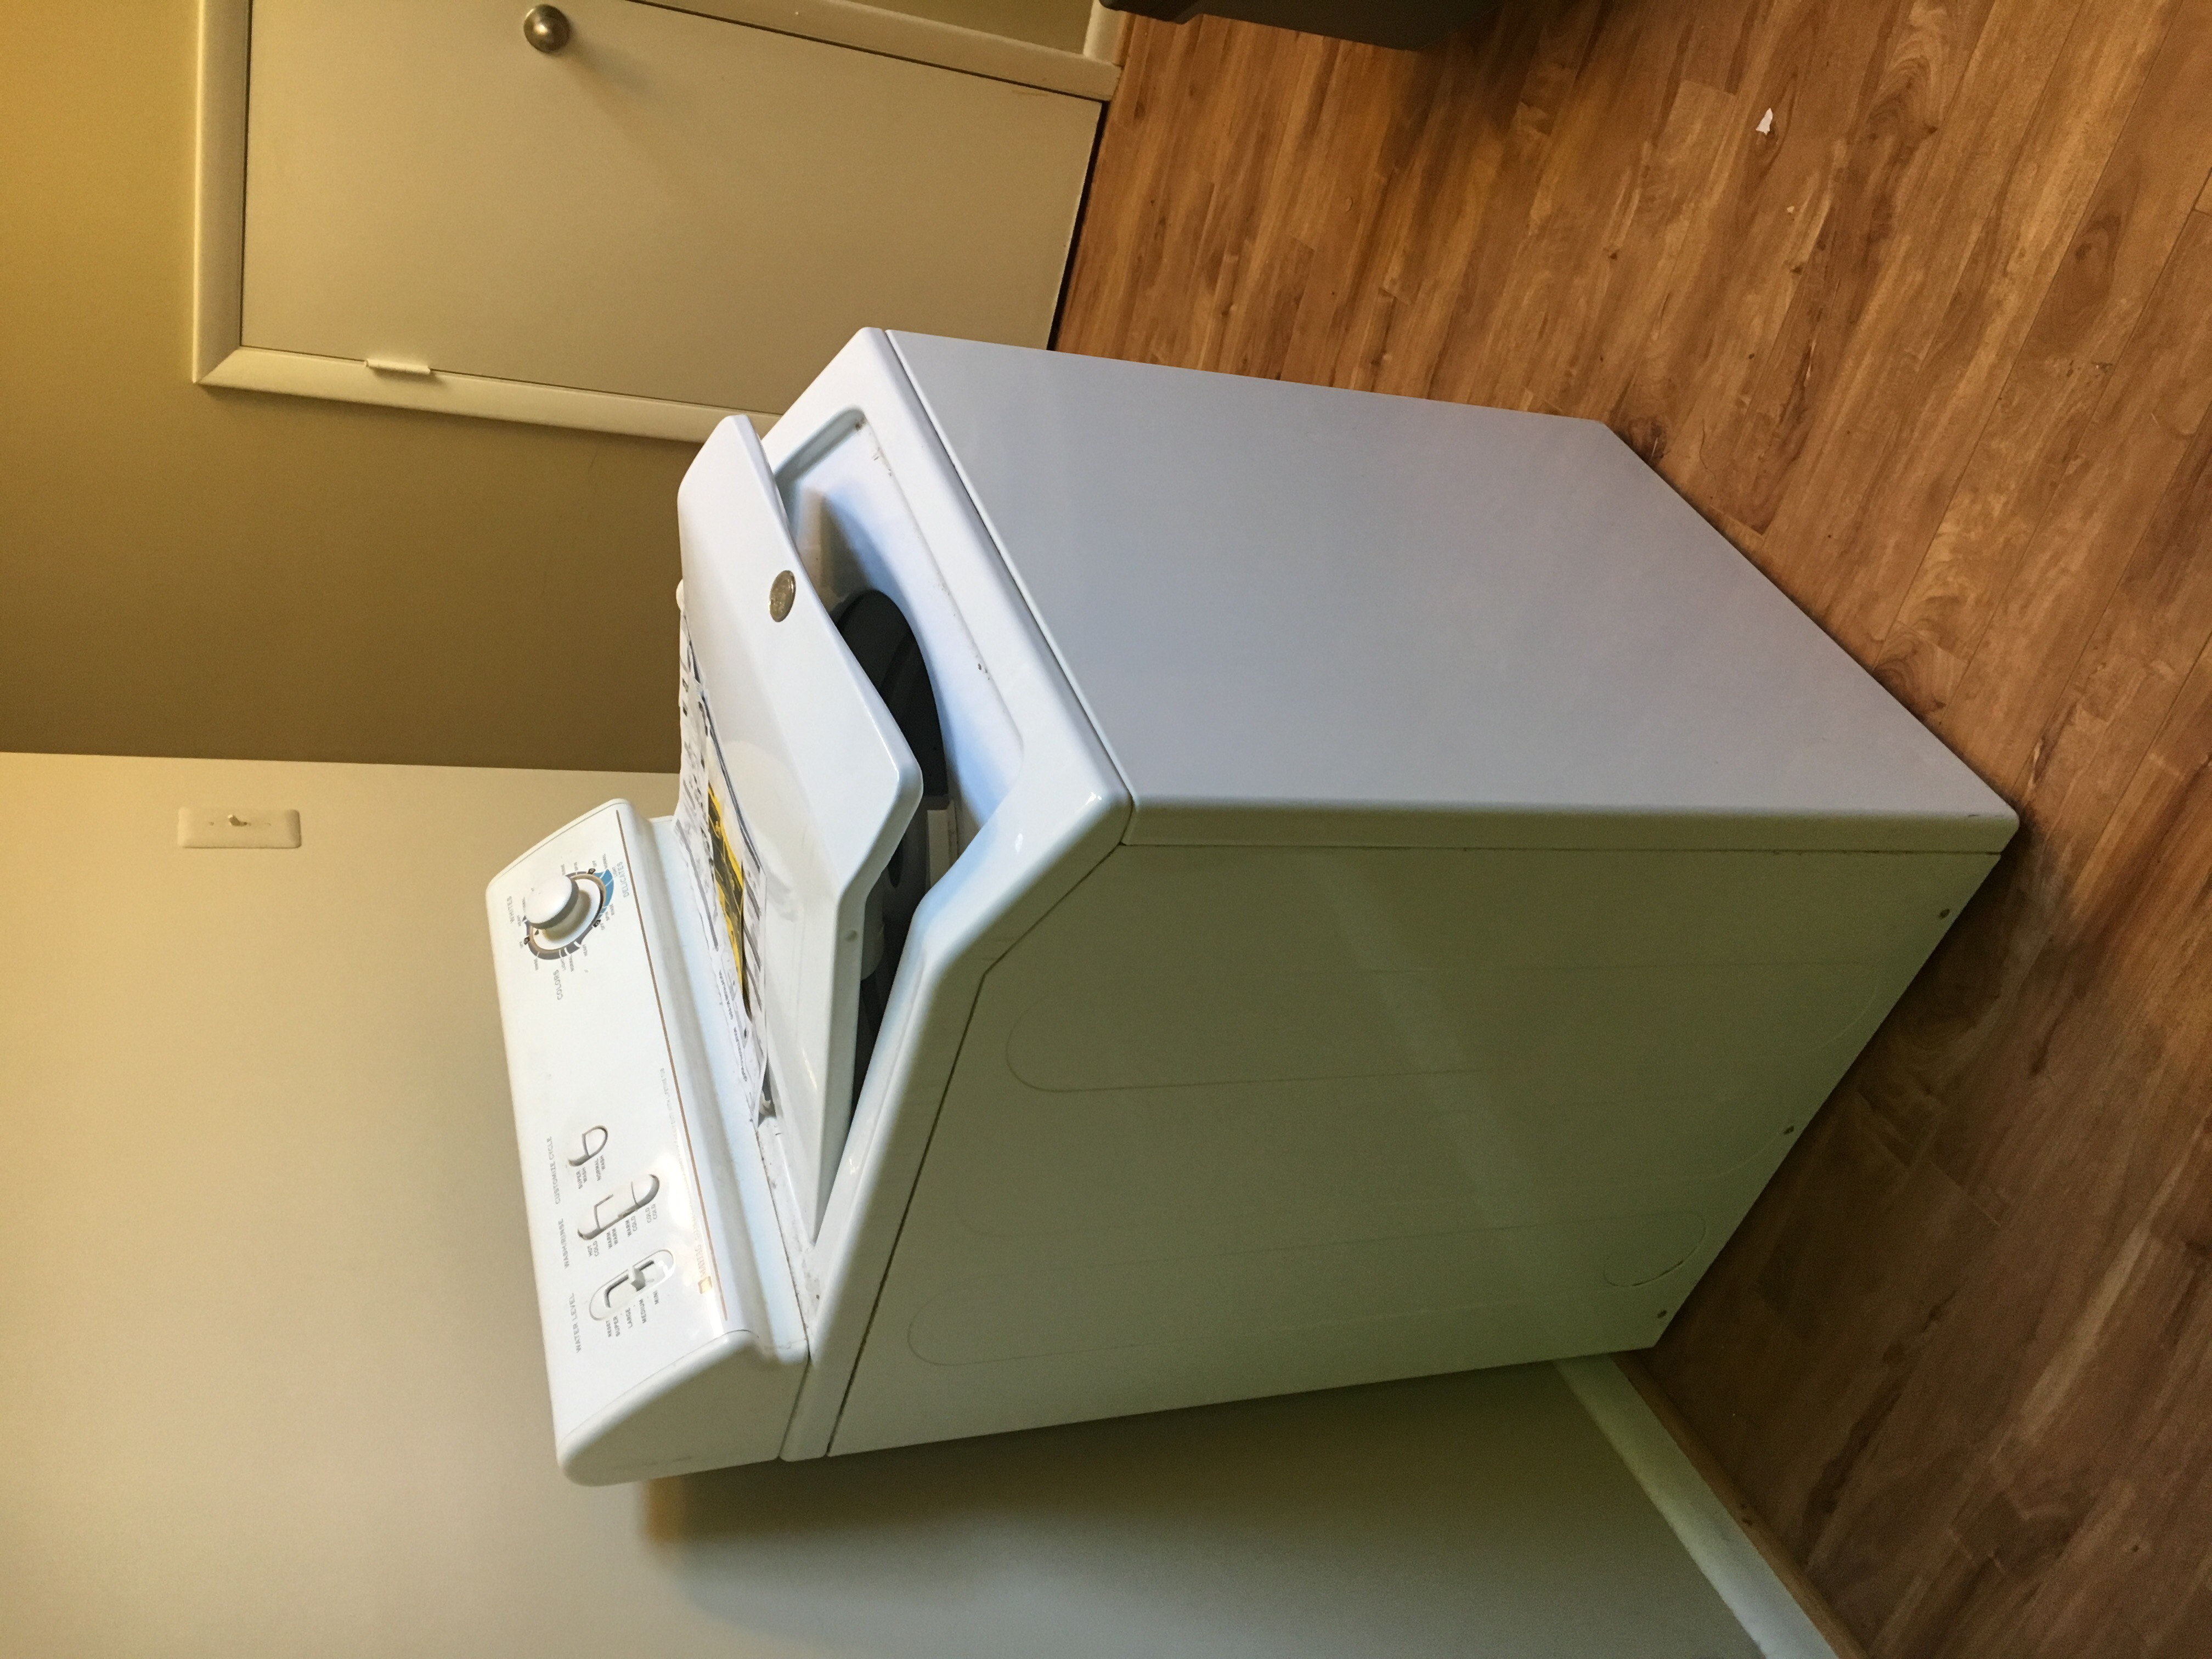 Maytag Clothes Washer $50/OBO